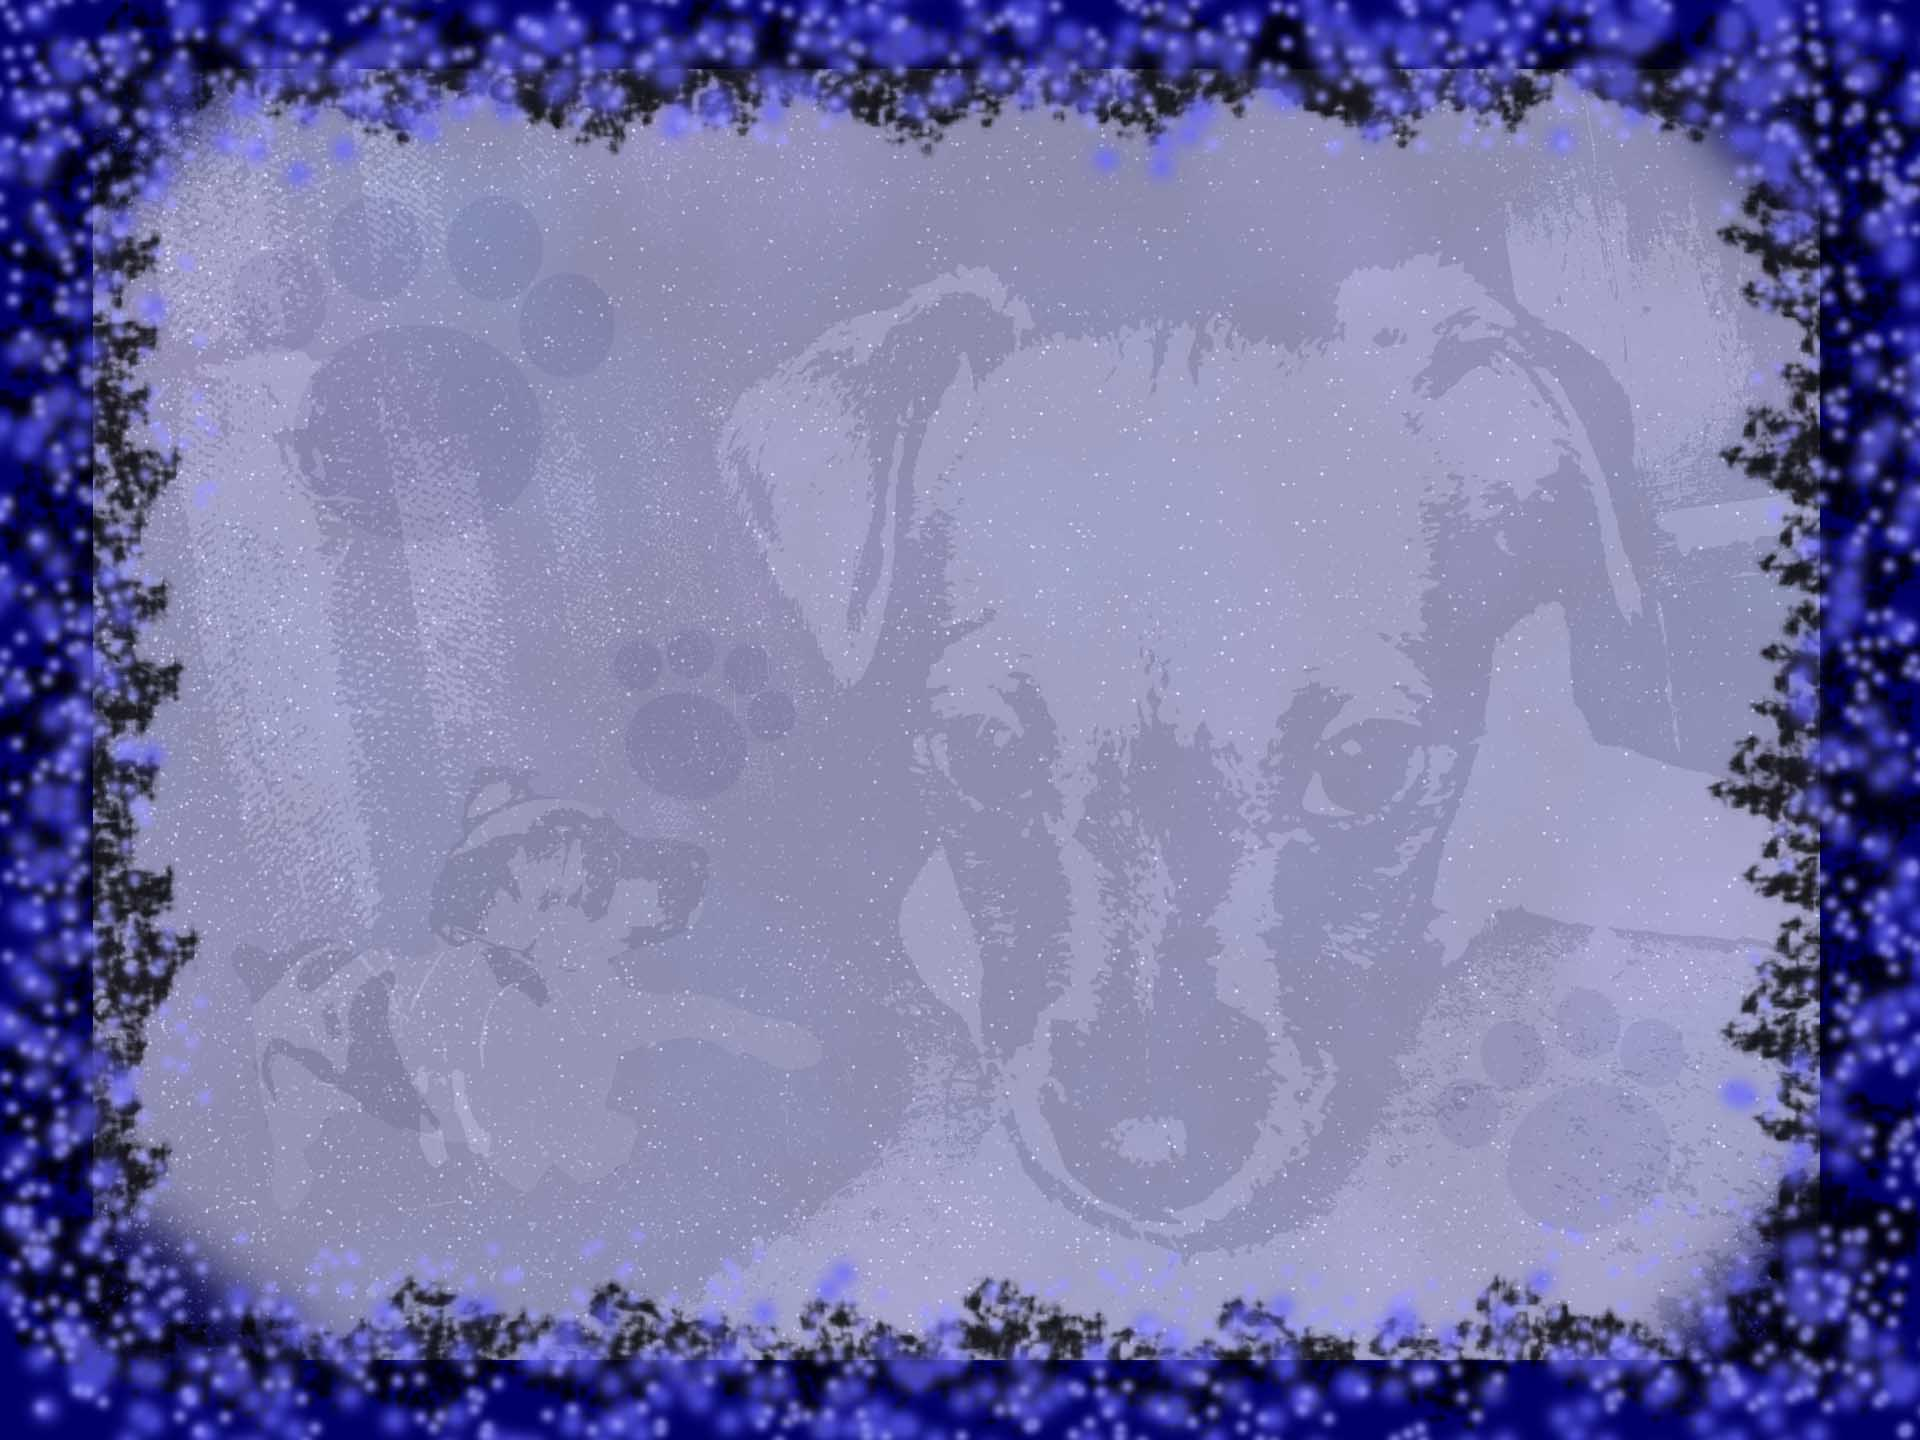 Puppy with Black and Blue Border desktop wallpaper WallpaperPixel 1920x1440